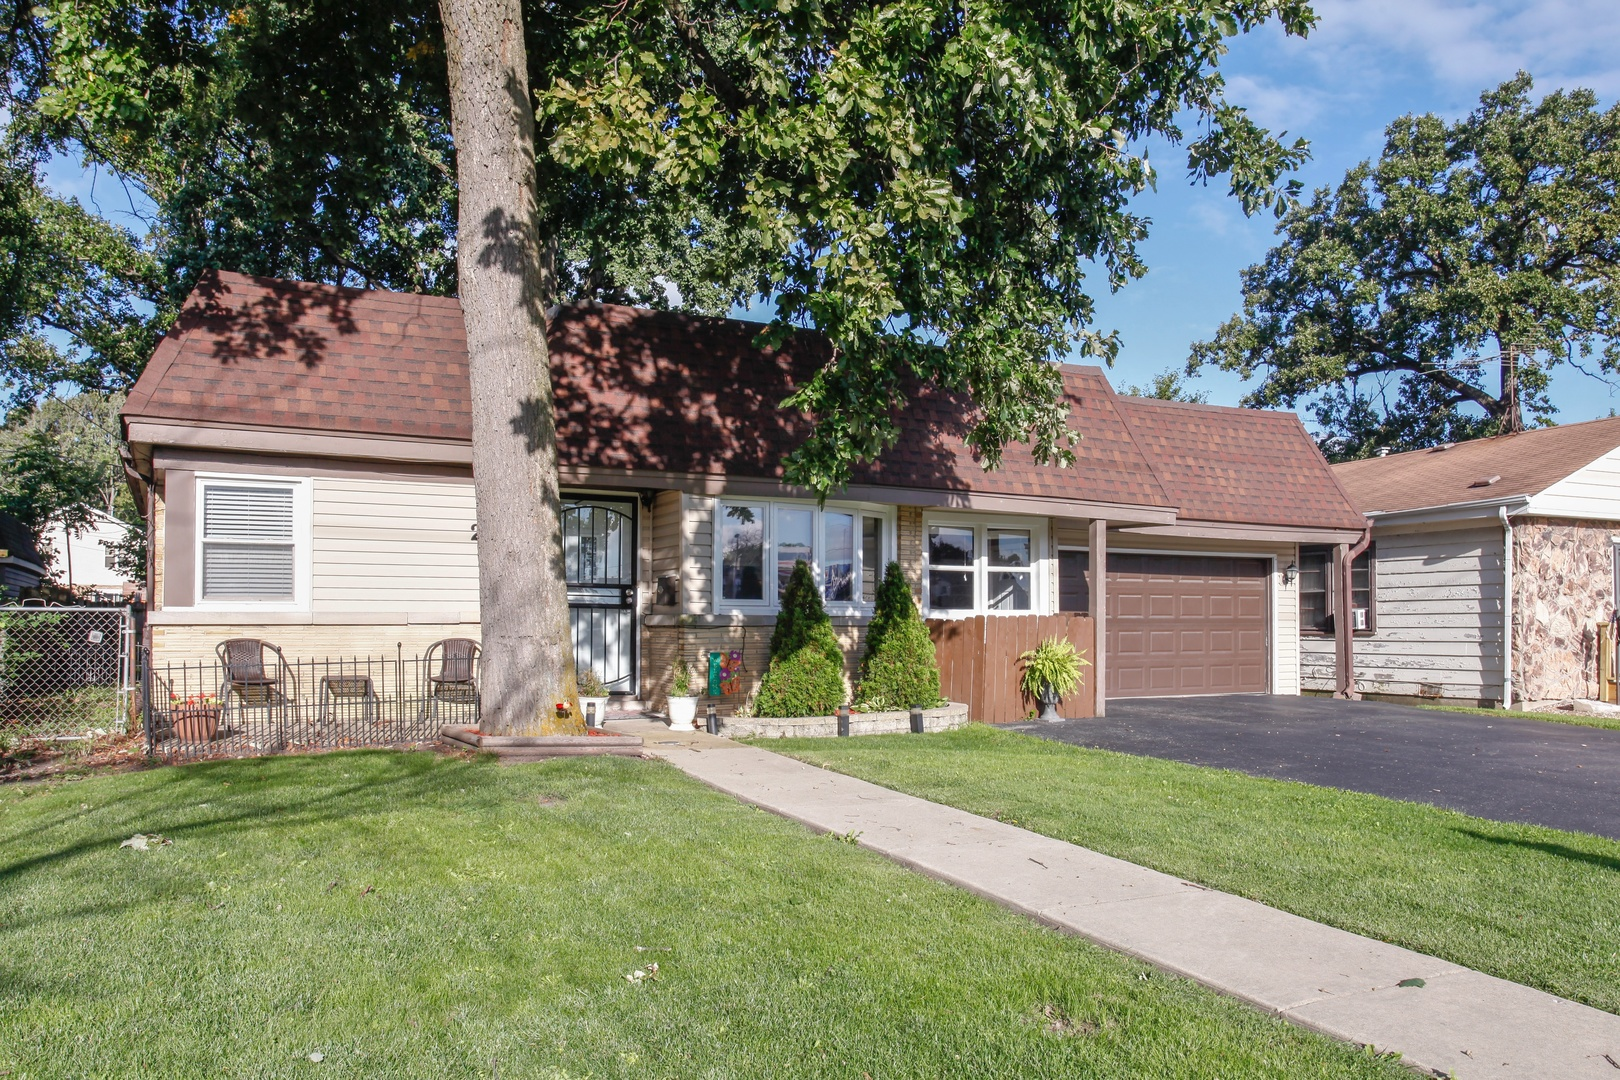 Home For Sale At 2450 1st Avenue In River Grove, Illinois For $266,900